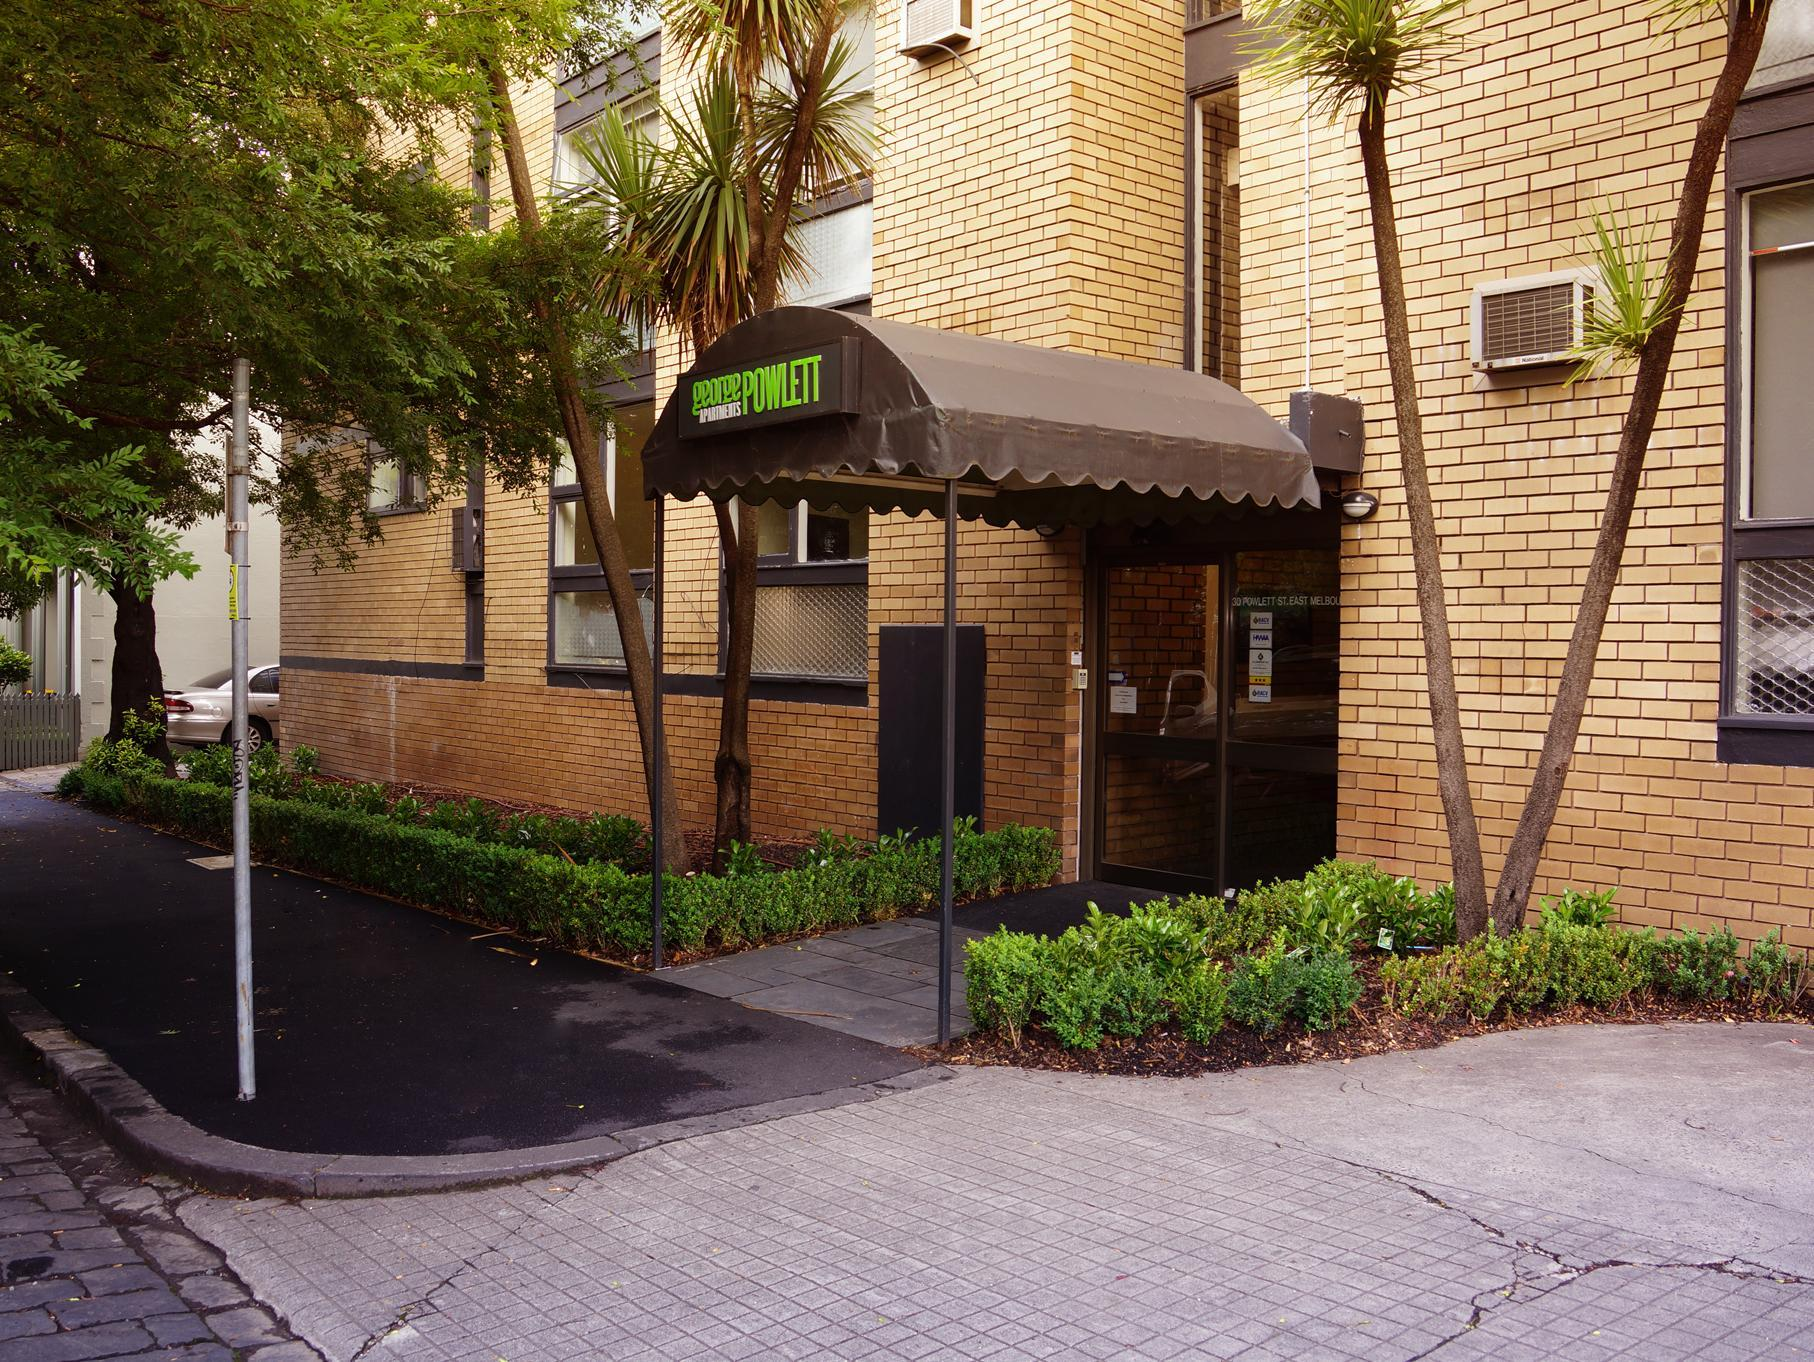 George Powlett Apartments